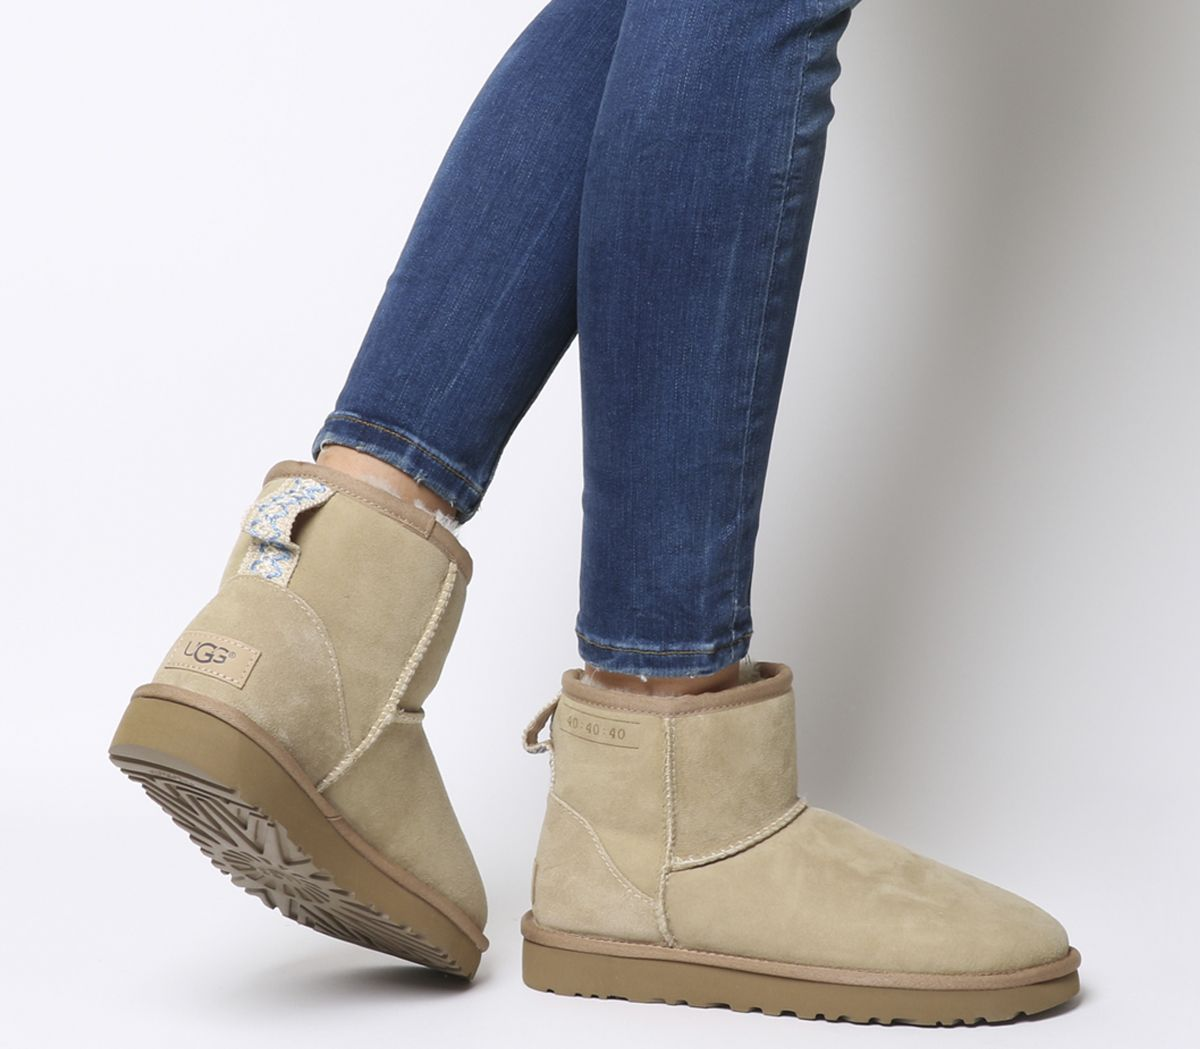 df344588a71 UGG Classic Mini 40 40 40 Boots Sand - Ankle Boots